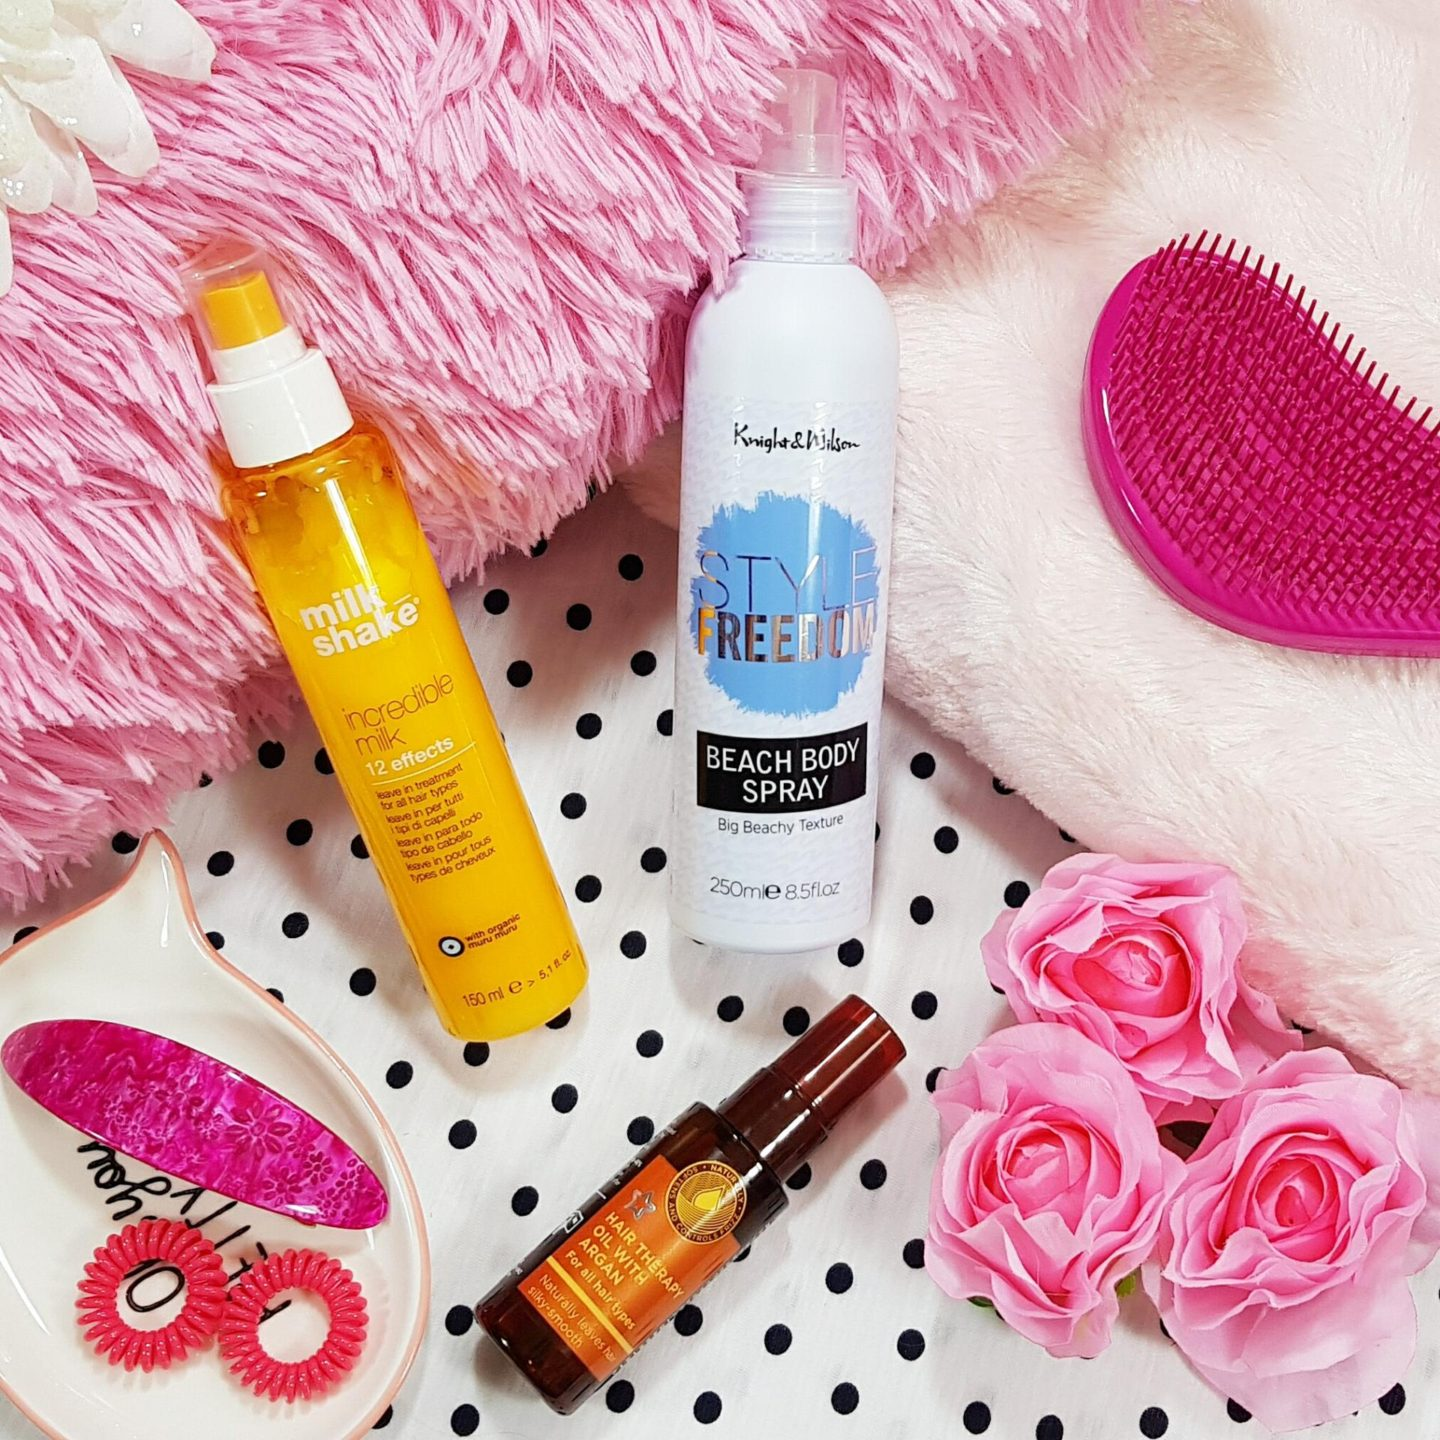 My Top 3 Hair Care Essentials